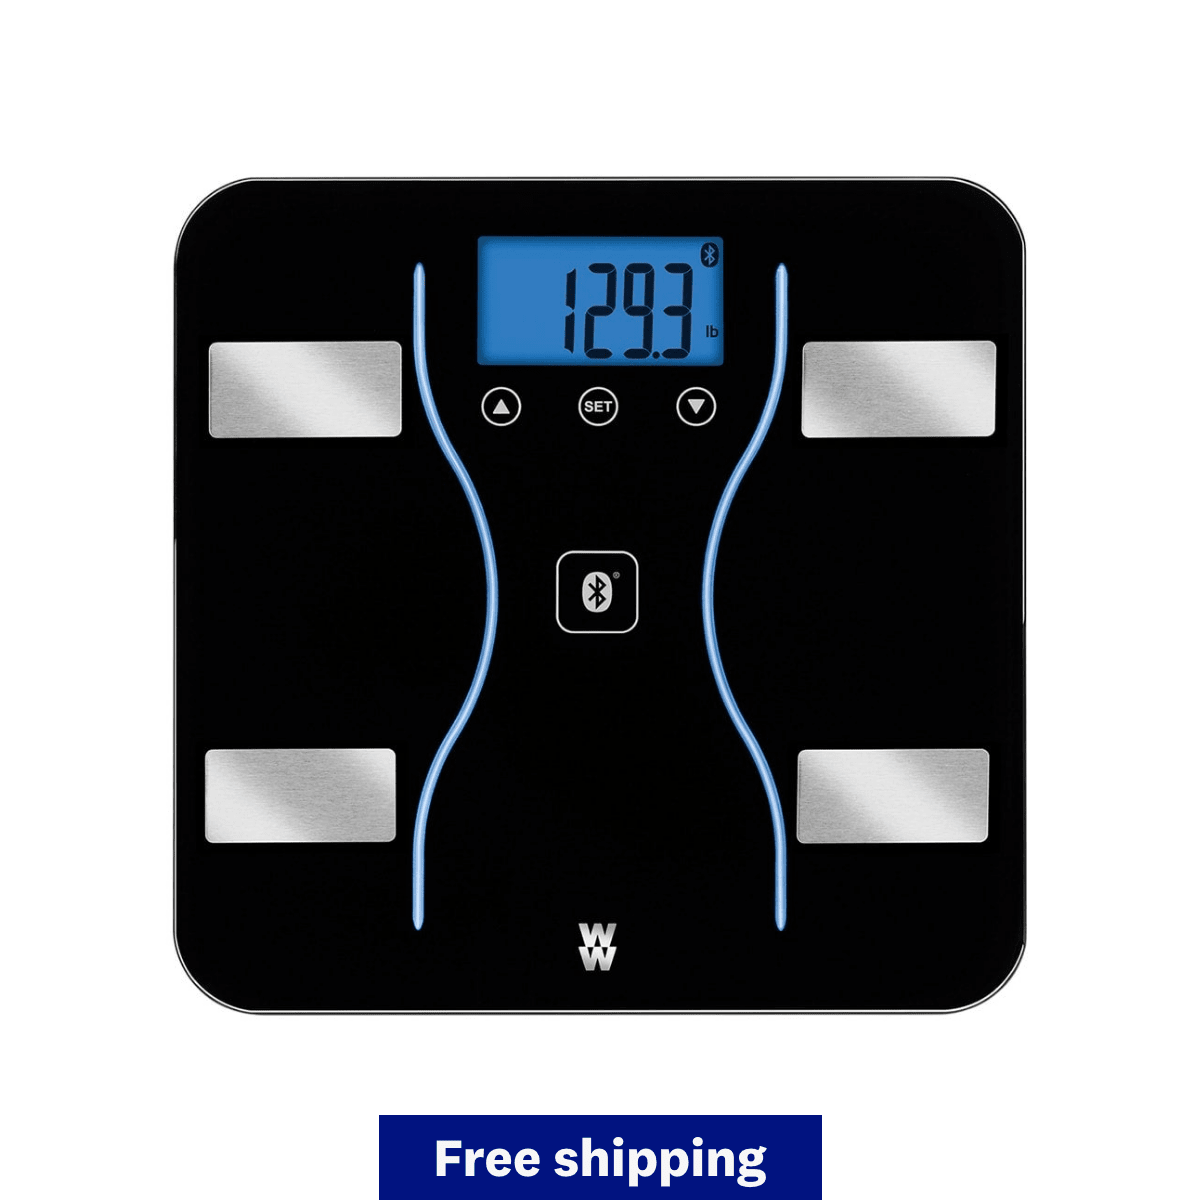 Body Analysis Bluetooth Scale - free shipping banner